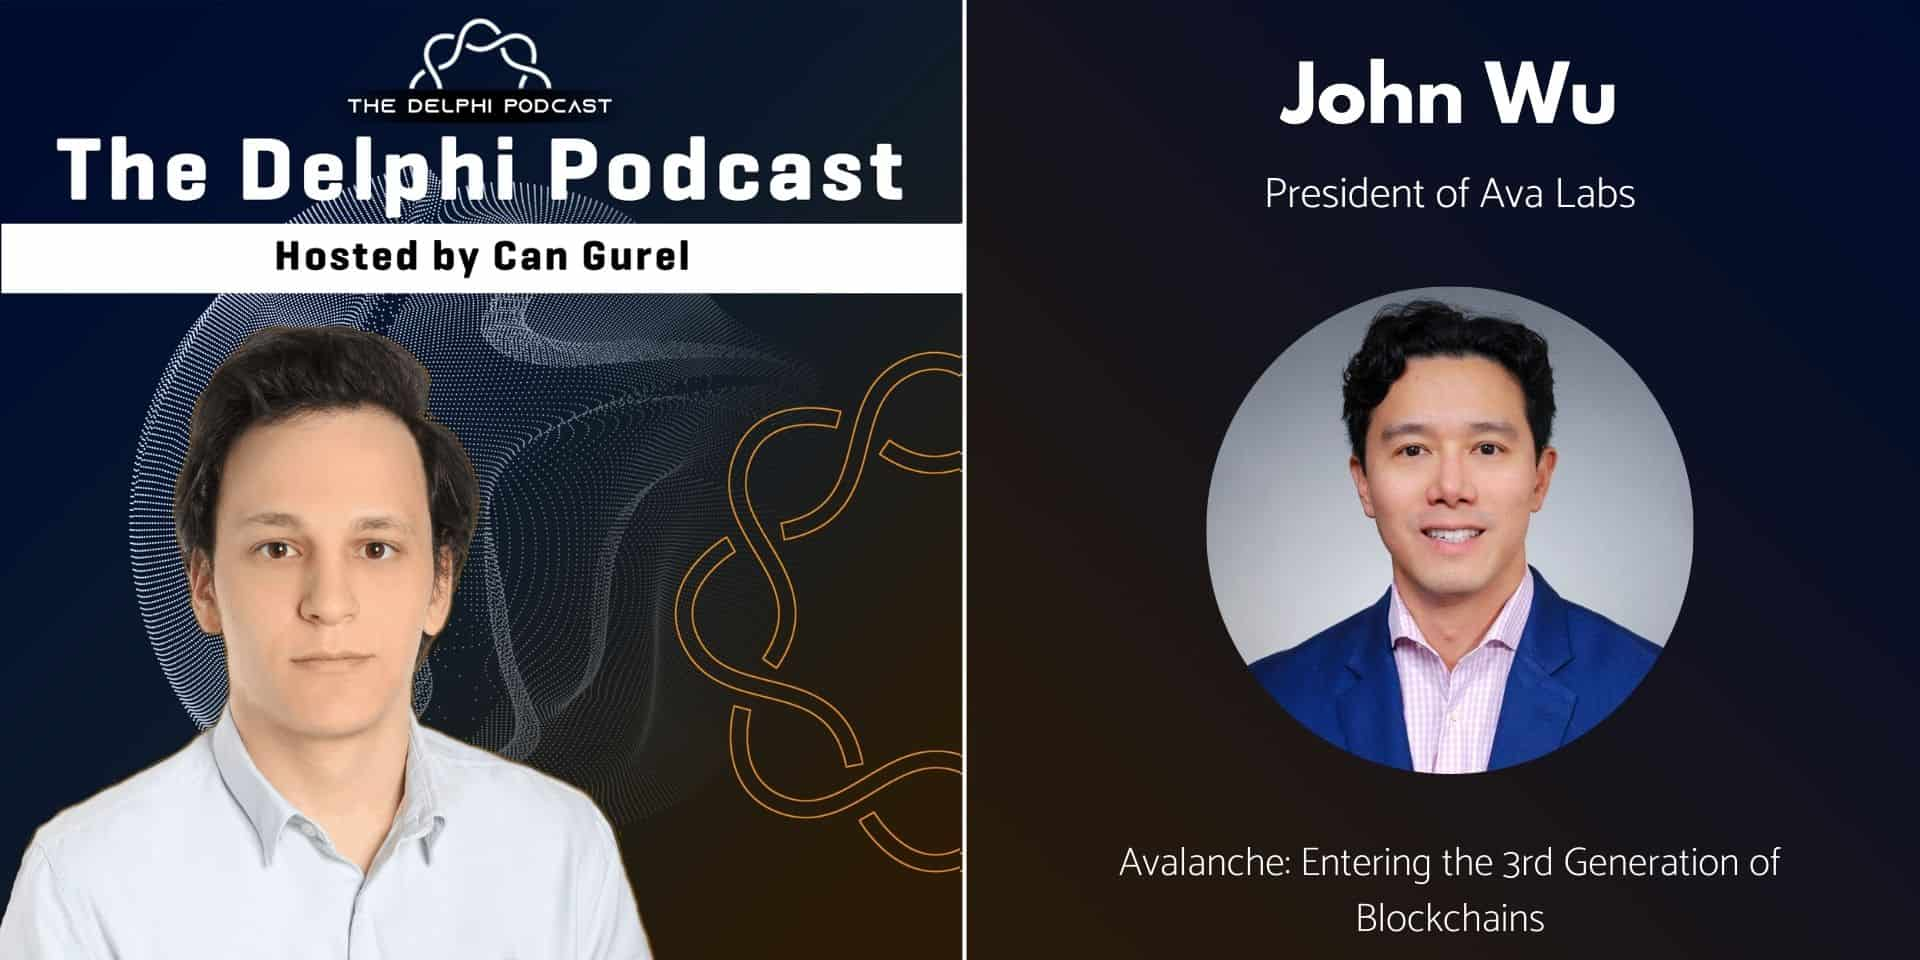 Avalanche: Entering the 3rd Generation of Blockchains ...